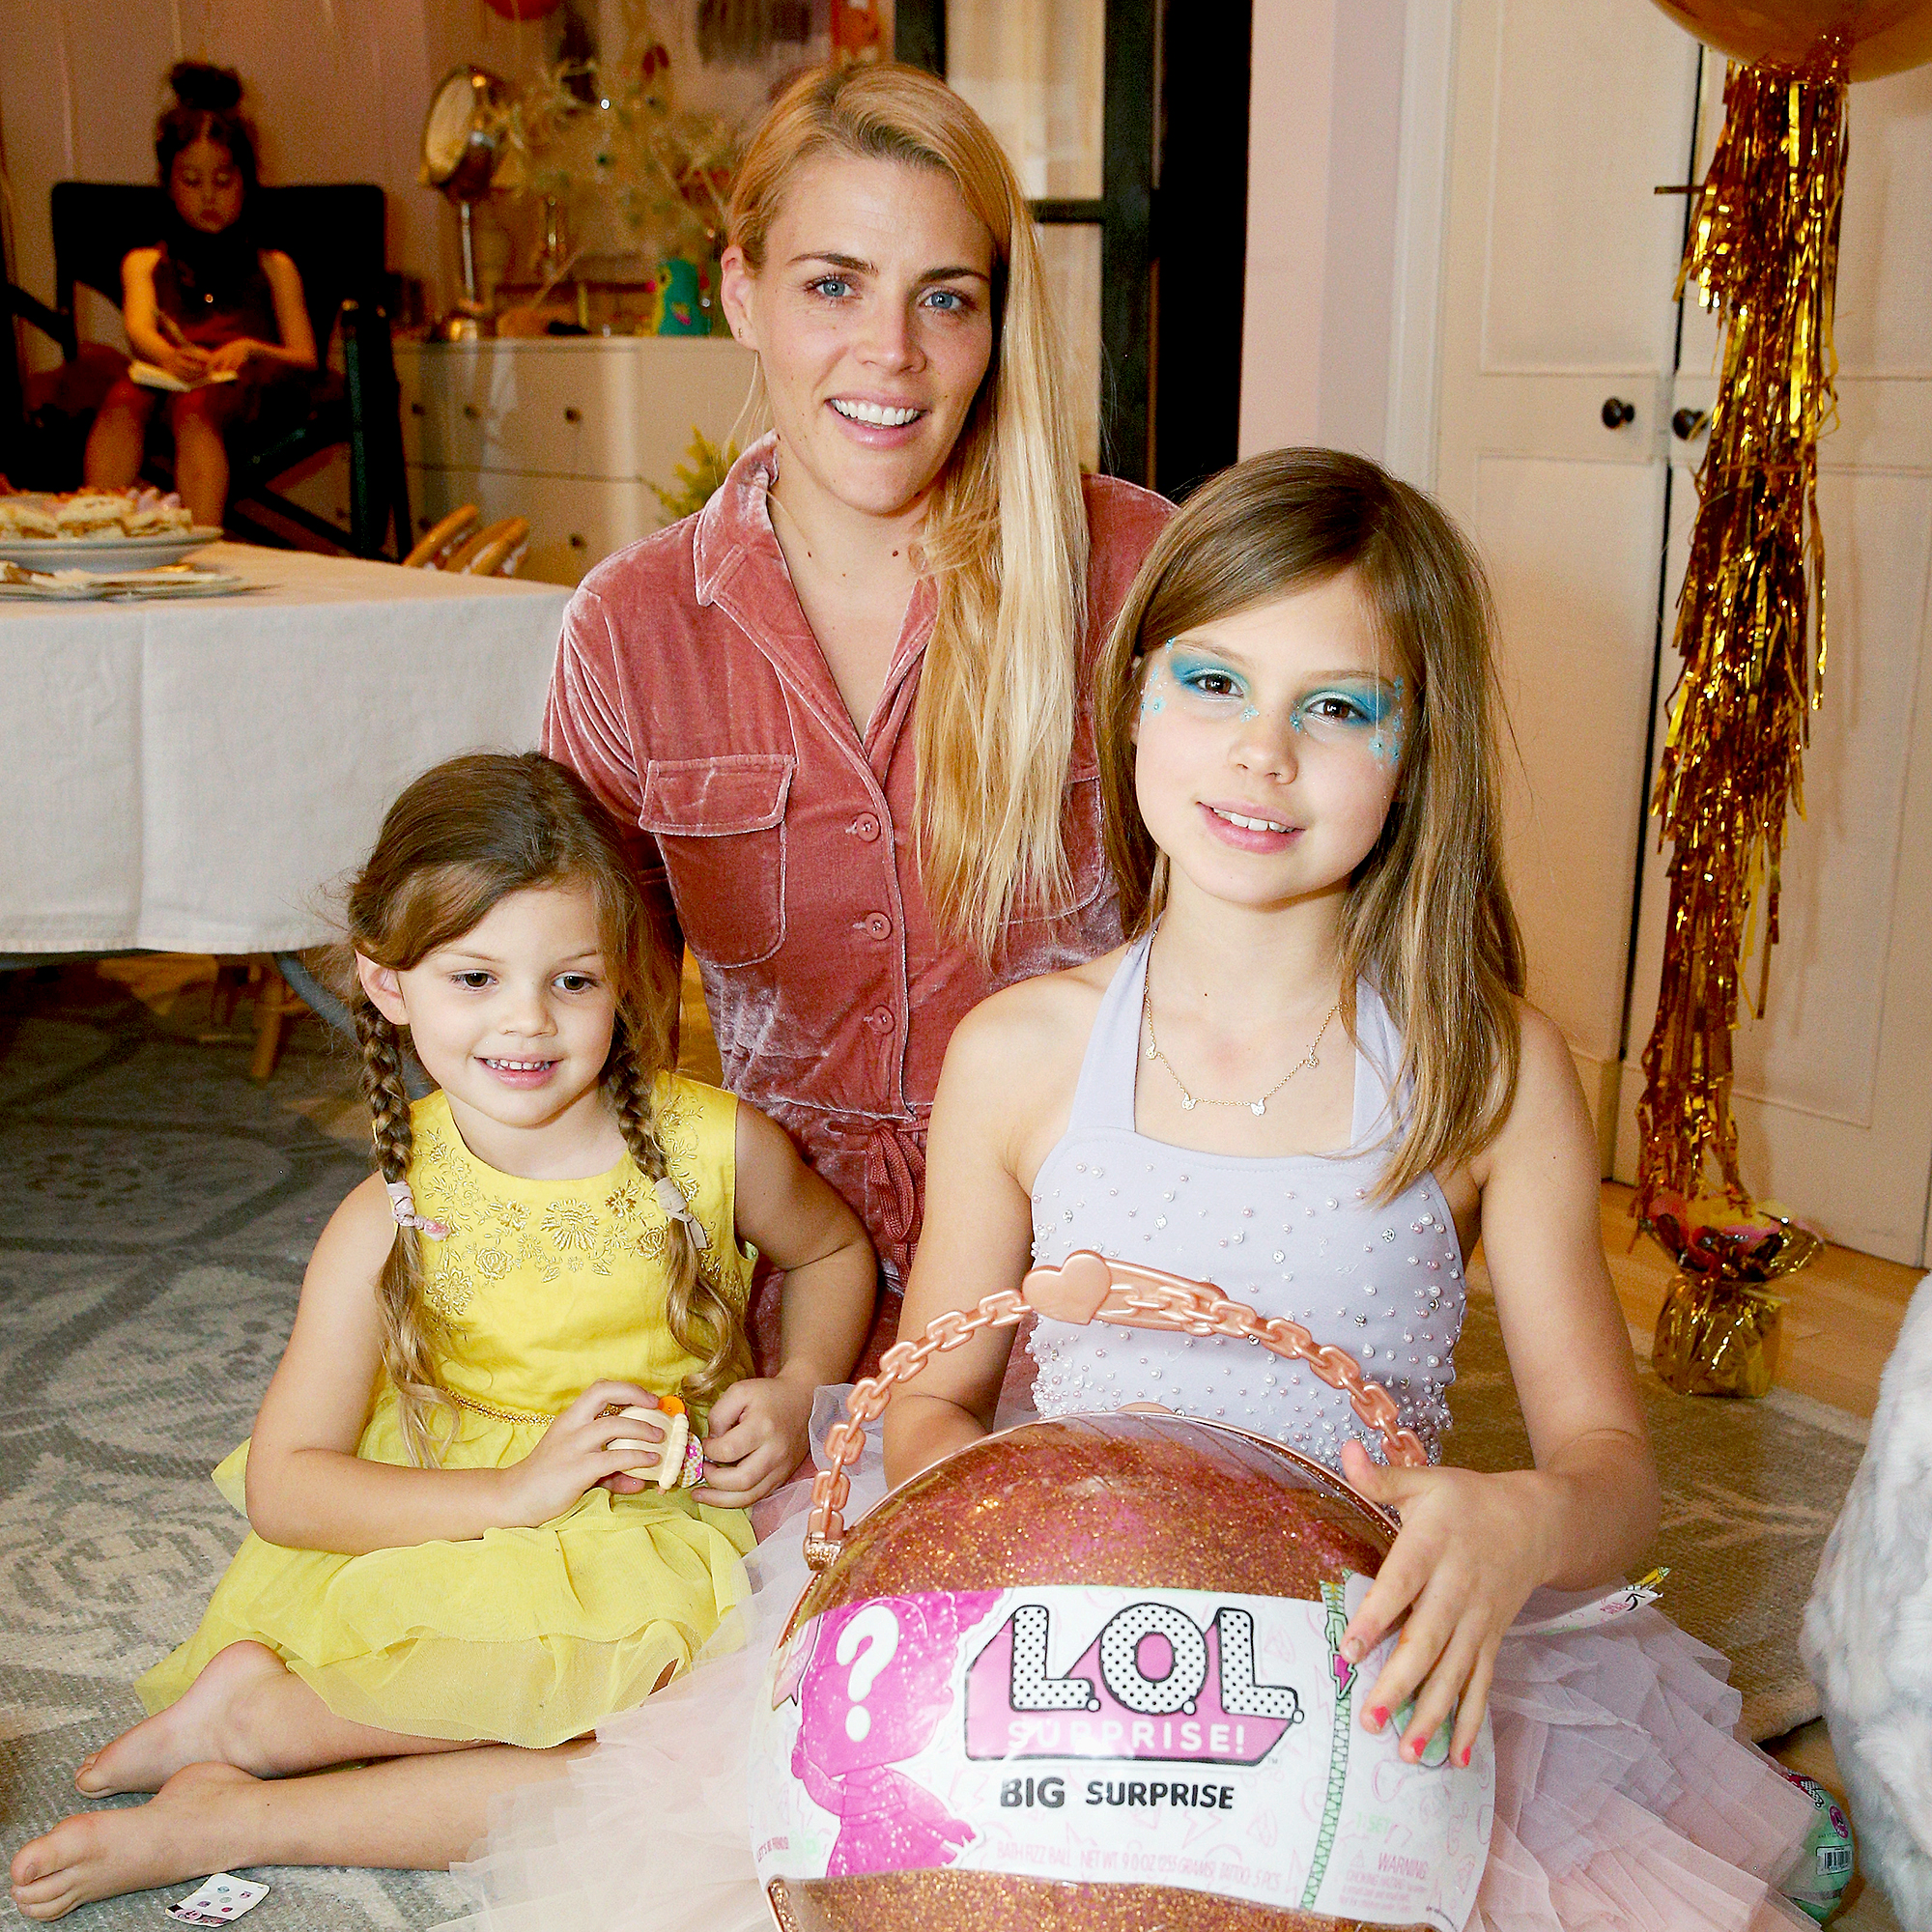 Birdie-Leigh-and-Cricket-Pearl-Silverstein-Busy-Philipps-kids-named-after-animals - LOS ANGELES, CA – DECEMBER 14: (L-R) Cricket Pearl Silverstein, Busy Philipps, and Birdie Leigh Silverstein attend L.O.L. Surprise! NYE Party Hosted by Busy Phillips & Sara Foster with daughters on December 14, 2017 in Los Angeles, California.